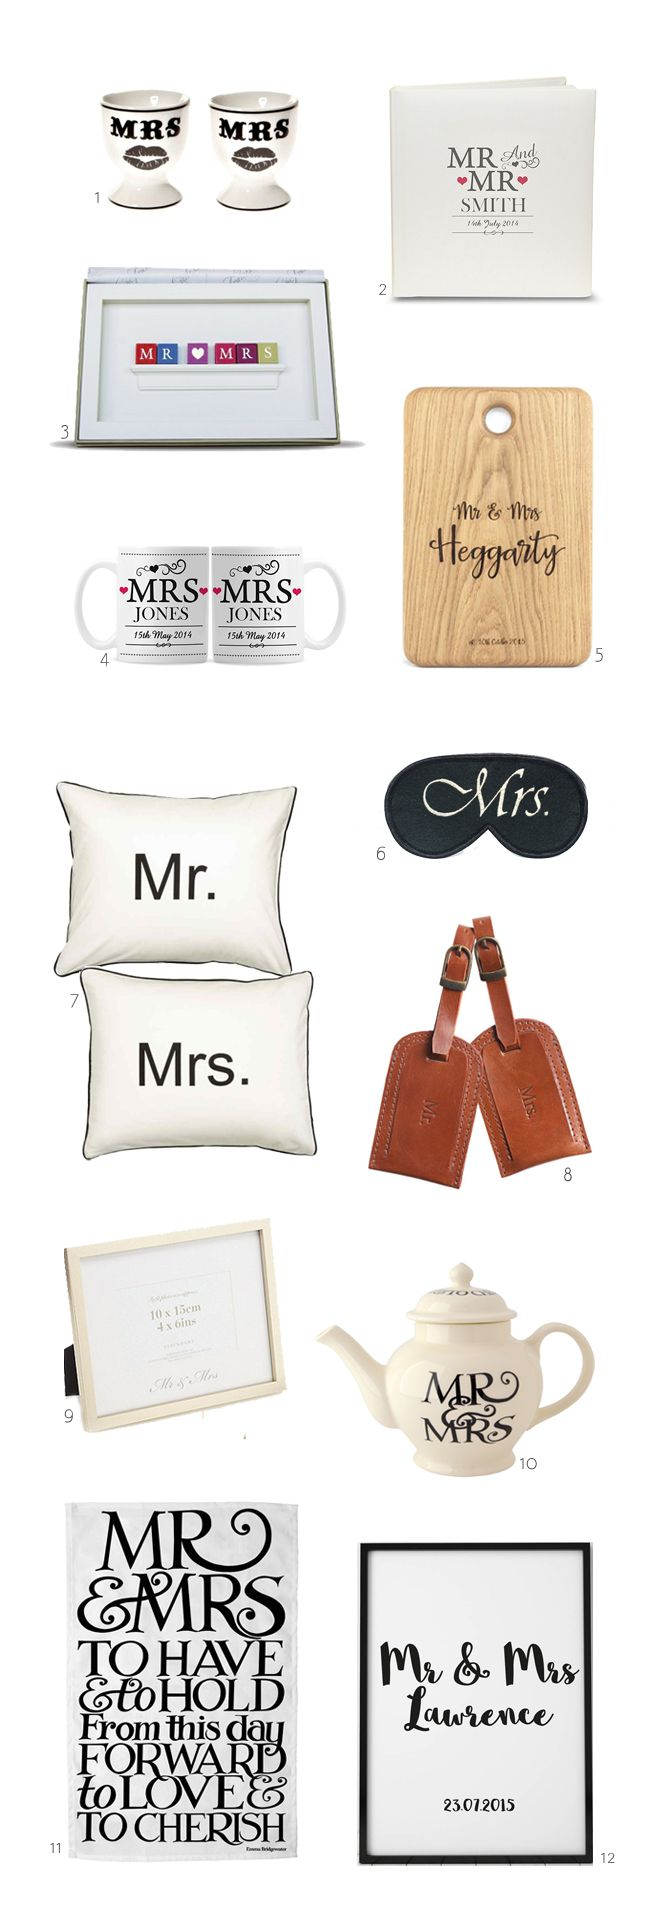 We've rounded up some seriously cute Mr & Mrs gift ideas for newlyweds from cups and chopping boards to luggage tags and cushions...